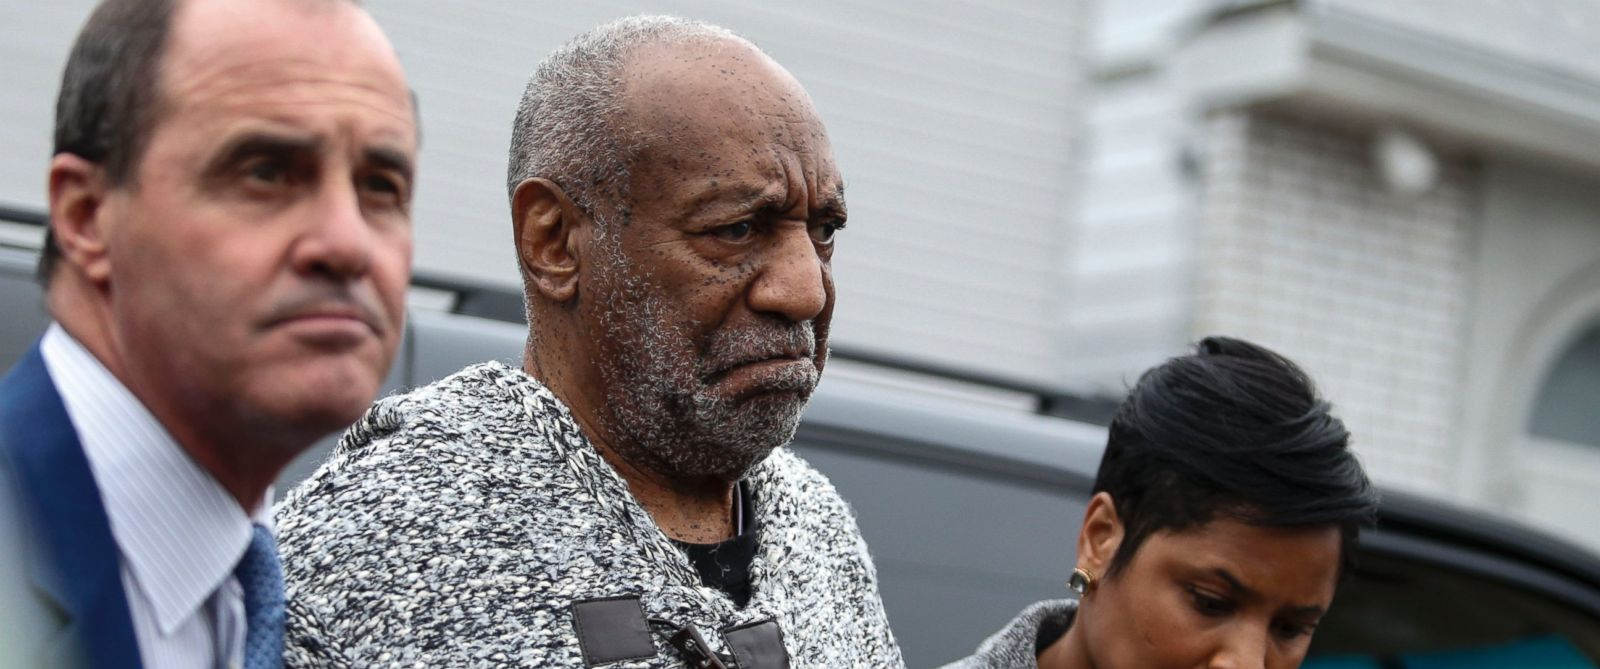 PHOTO: Bill Cosby arrives to the Court House in Elkins Park, Pa. to face a charge of aggravated indecent assault, Dec. 30, 2015.